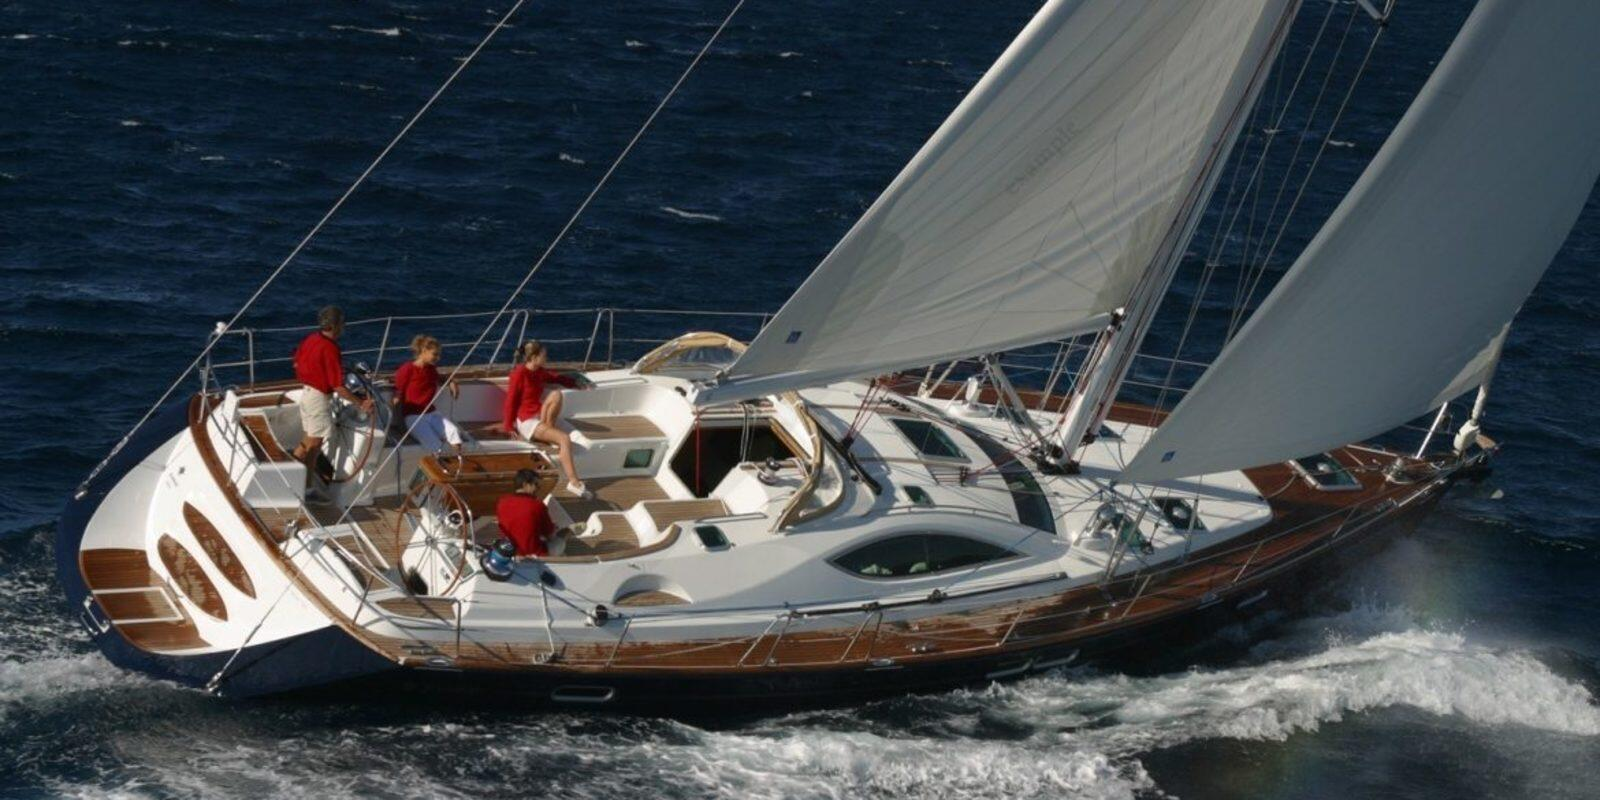 Cabin charter IONIAN ISLANDS, from Corfu, Paxos and Antipaxos, Maxiyacht with Chef